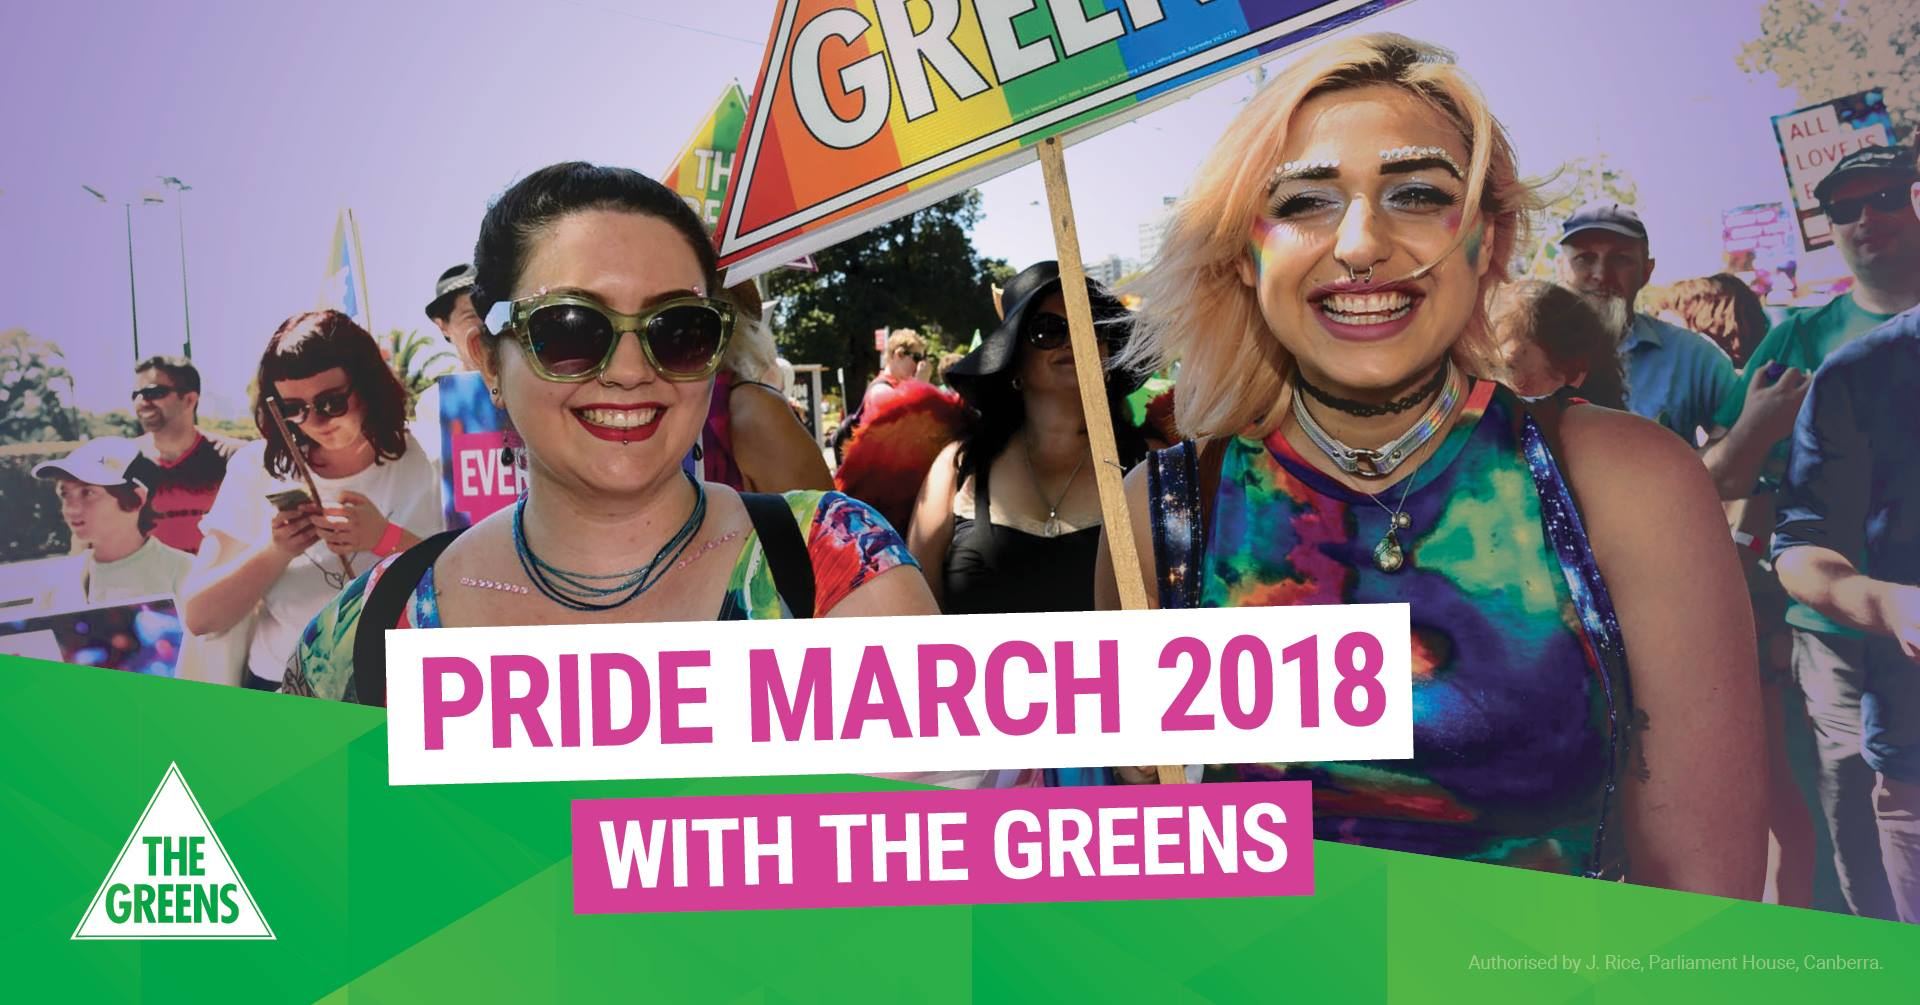 Image: Queer Greens at Pride 2017